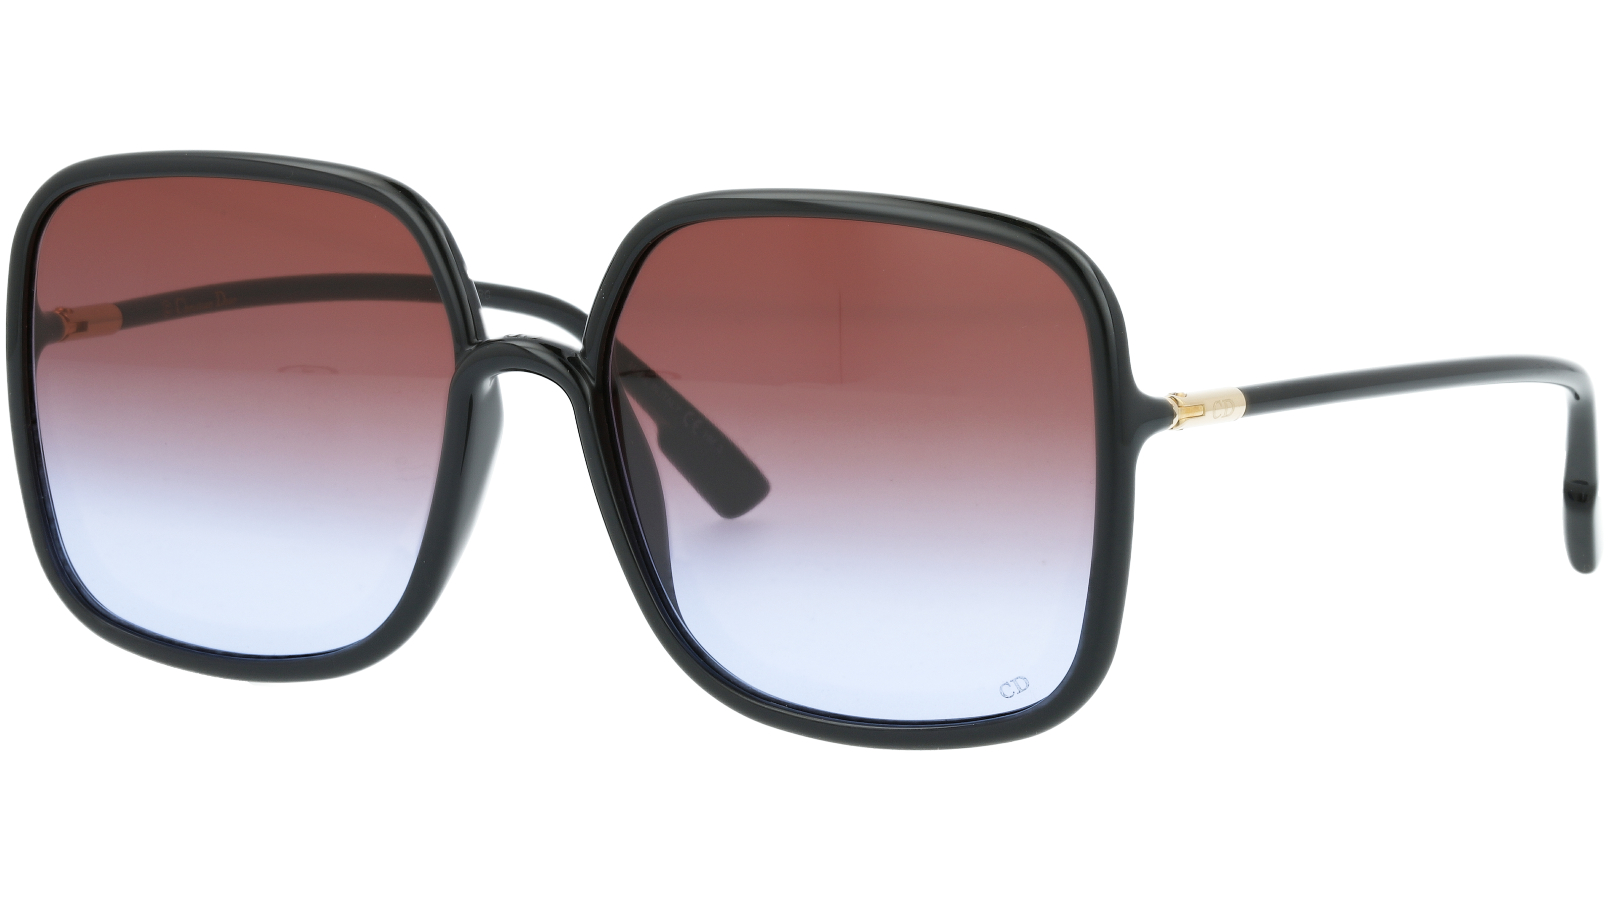 DIOR SOSTELLAIRE1 807YB 59 BLACK Sunglasses